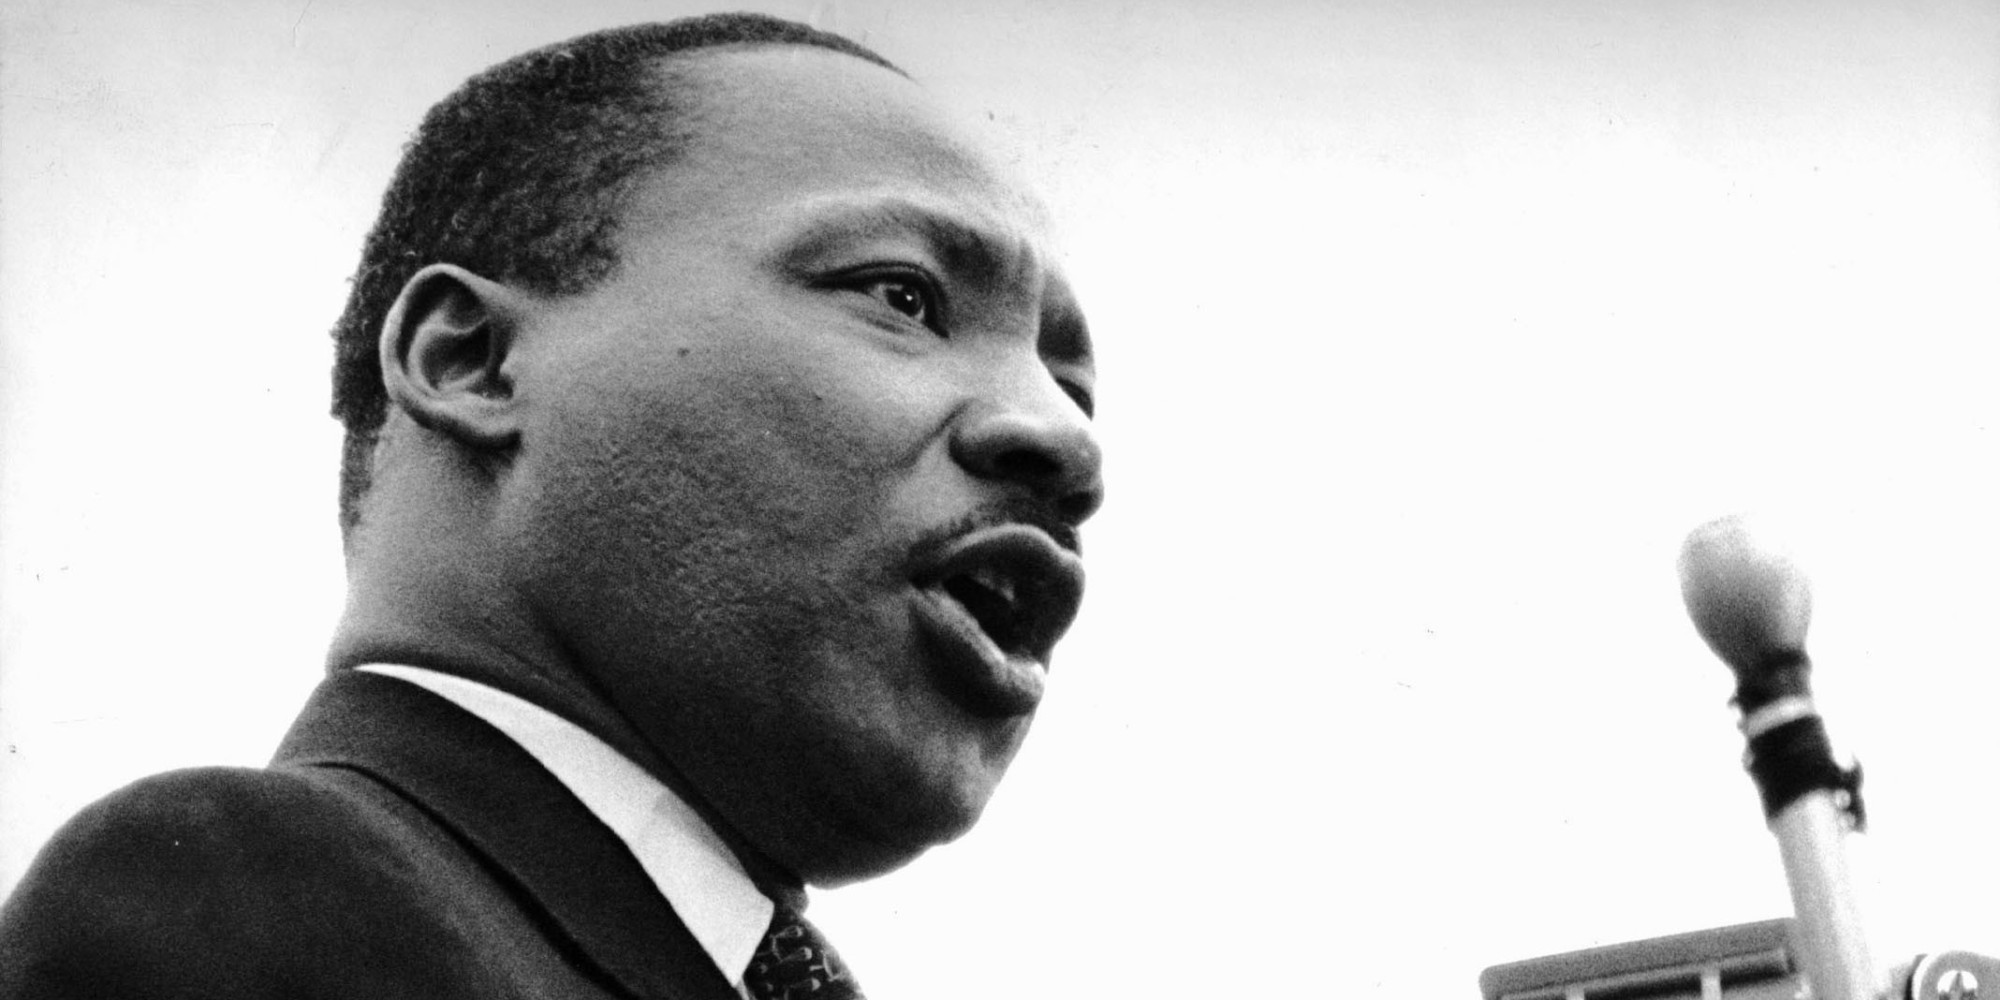 At United Nations Plaza, the Rev. Dr. Martin Luther King Jr. told an estimated 125,000 peace marchers that the United States should end the bombing of North Vietnam